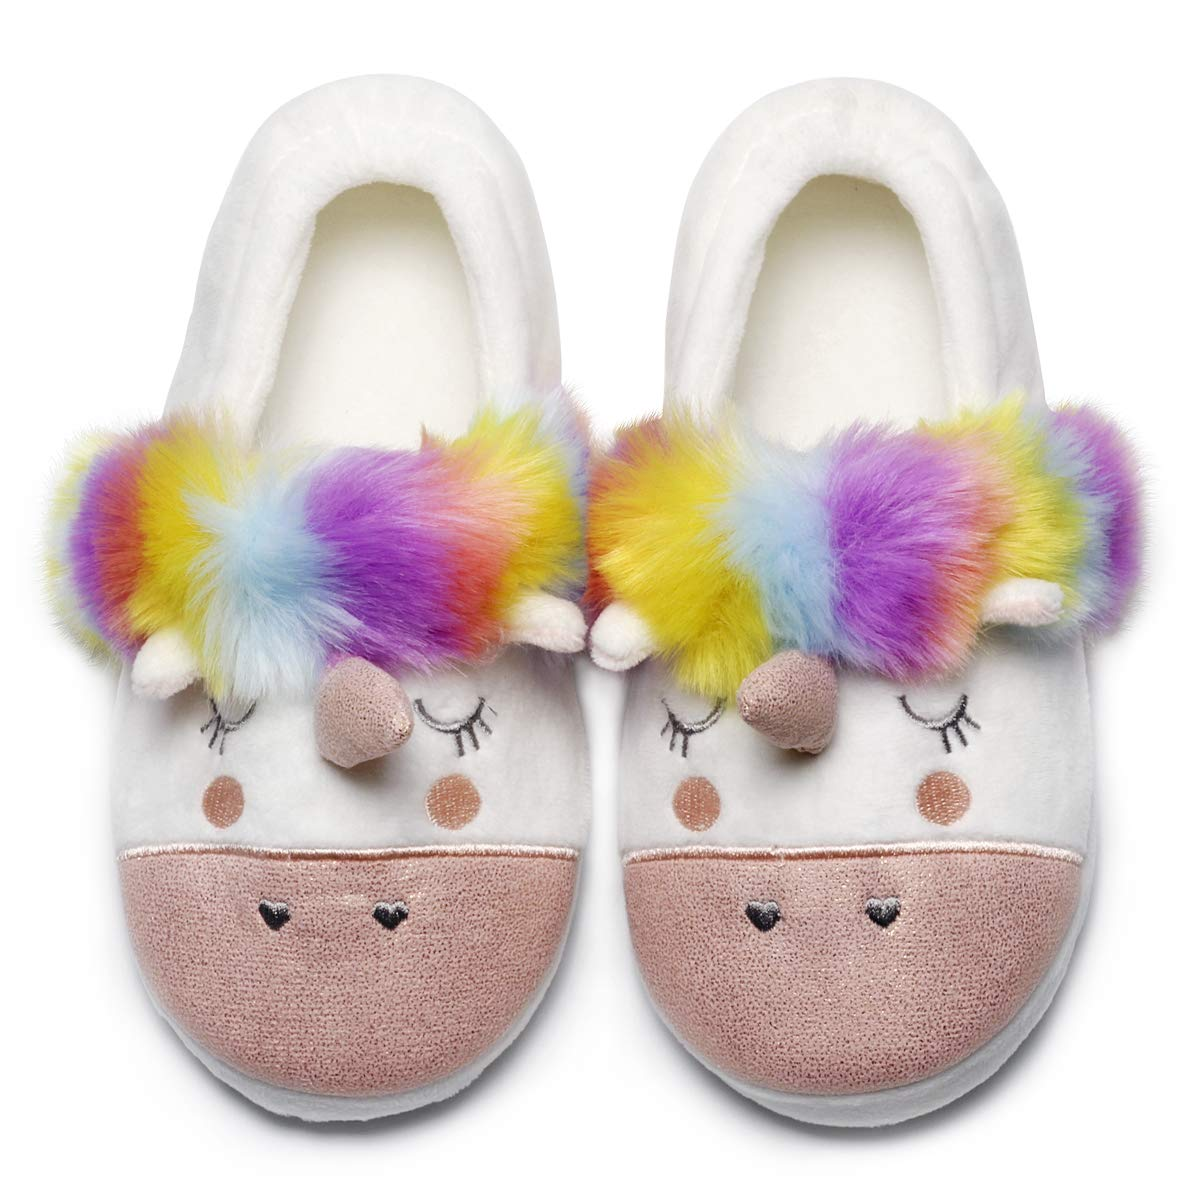 3f561be166 Womens Unicorn Slippers |Cute Funny Slippers for Family| Kids Girls Animal  House Shoes